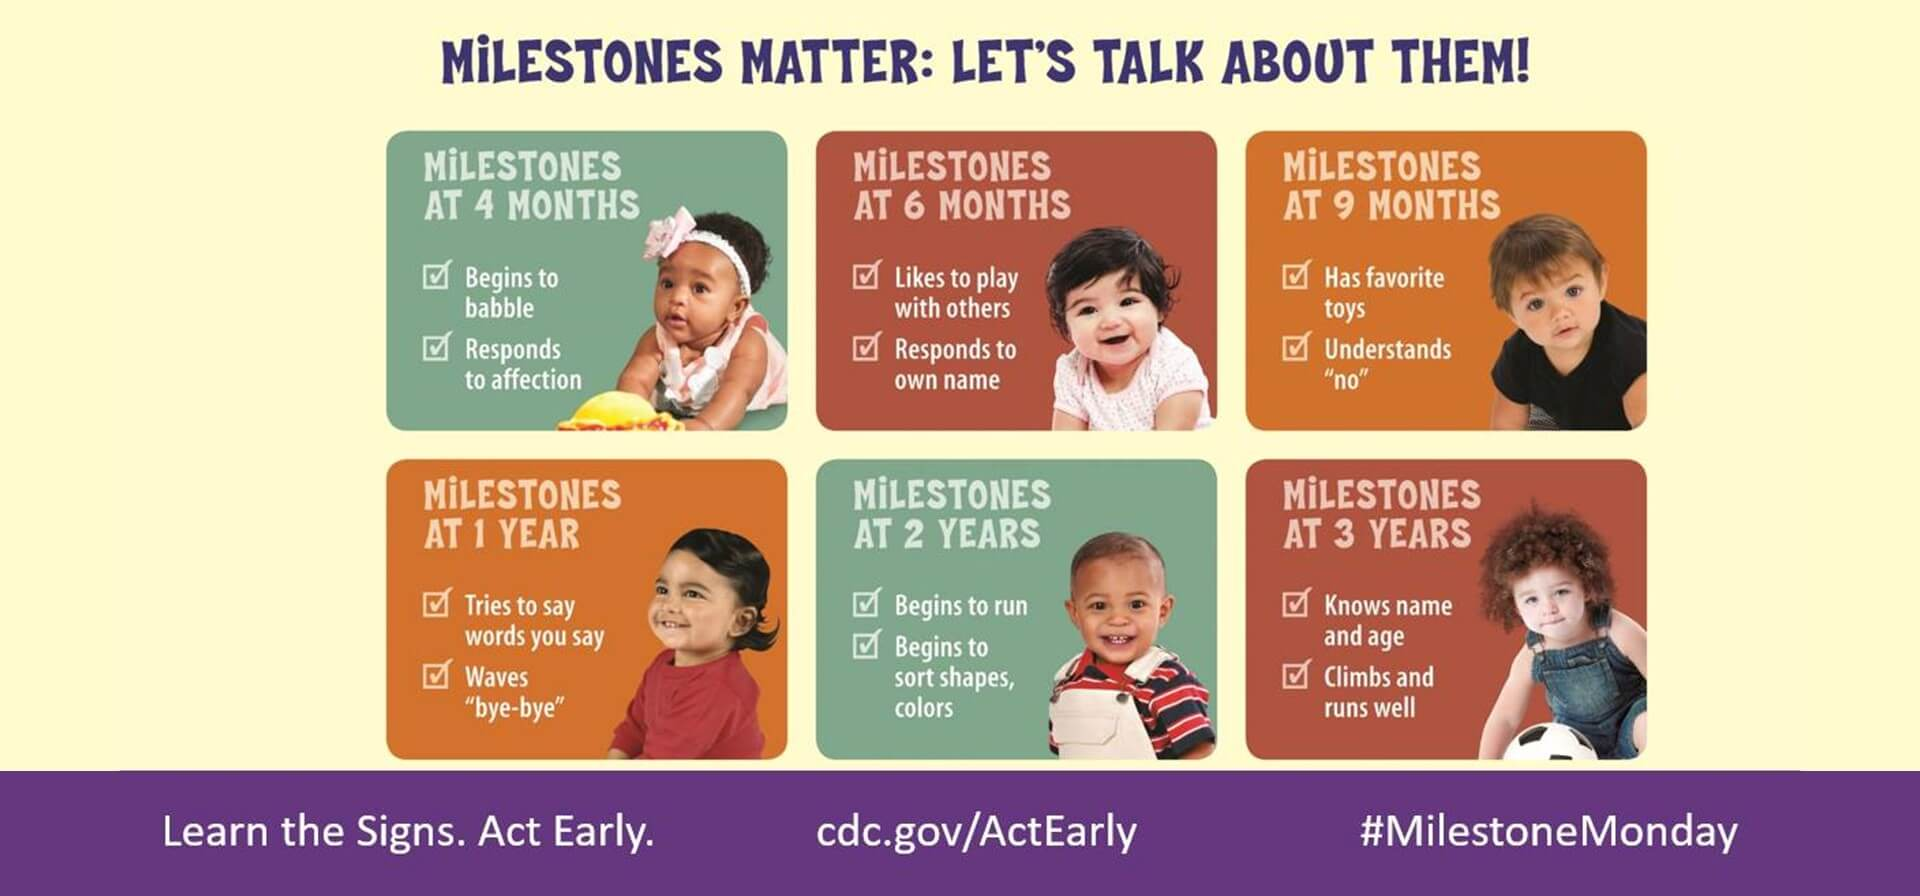 Milestones Matter, Let's talk about them. Gives milestone for children starting at 4 months. More information at cdc.gov/actearly